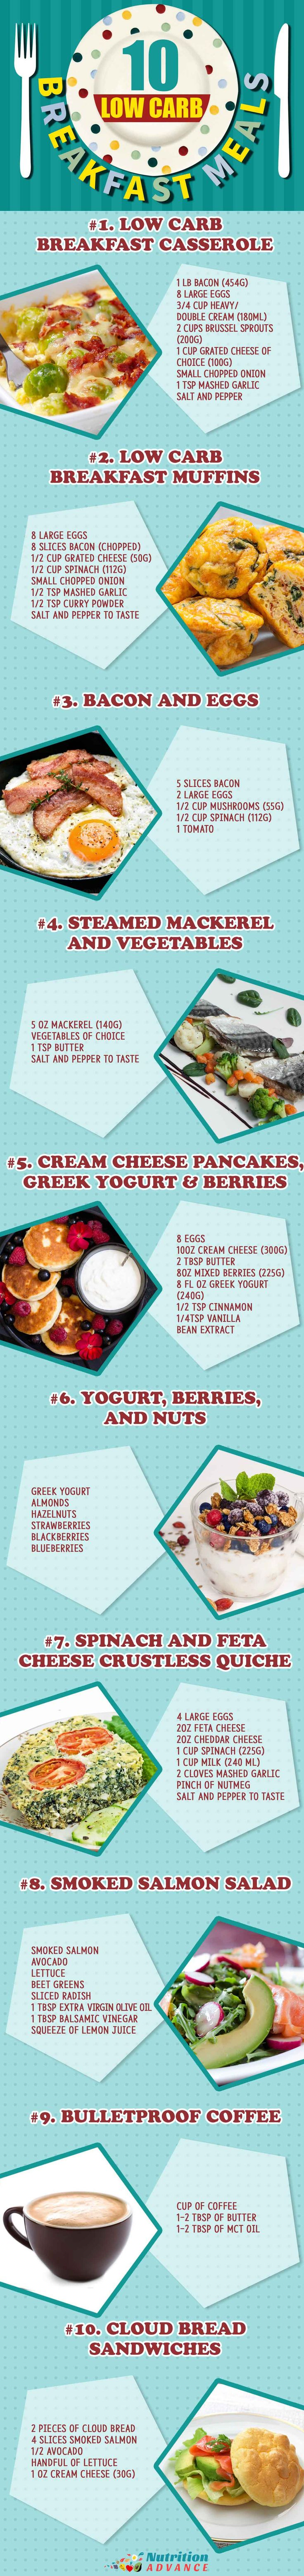 Low Carb Breakfast: 10 recipes that are low in carbs and high in nutrients. All recipes are gluten-free, no oil, no sugar, no grains. Perfect meals for LCHF.